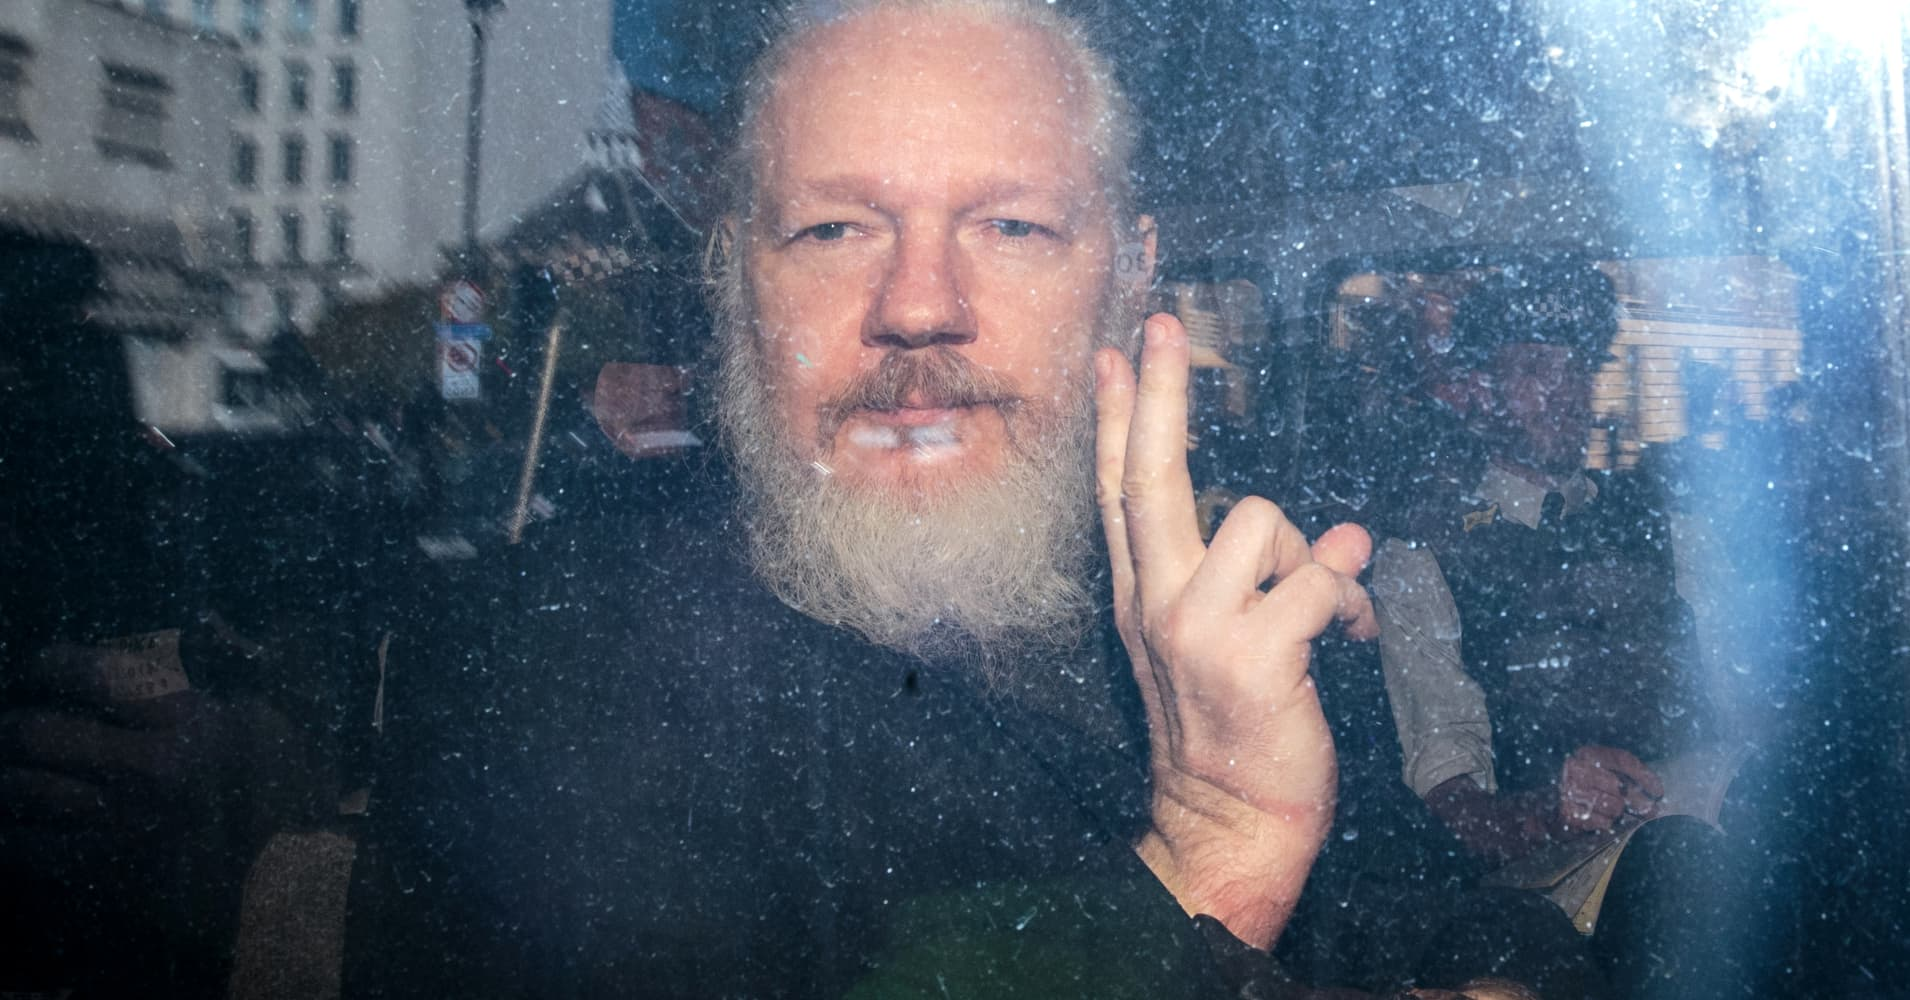 UK lawmakers urge British government to extradite WikiLeaks founder Assange to Sweden